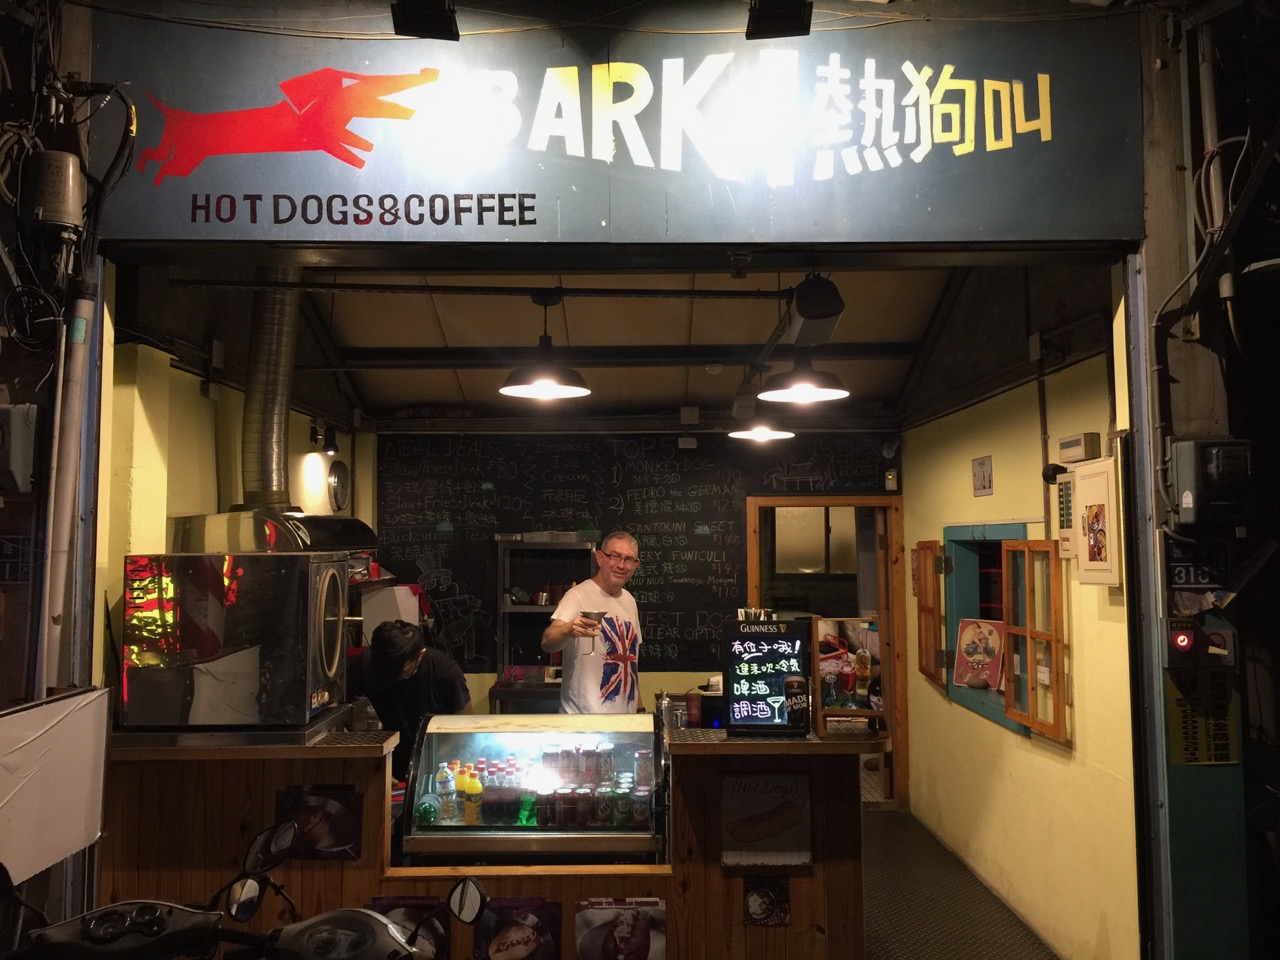 Bark restaurant in Kaohsiung, run by Carl and his wife Wendy out of her family home